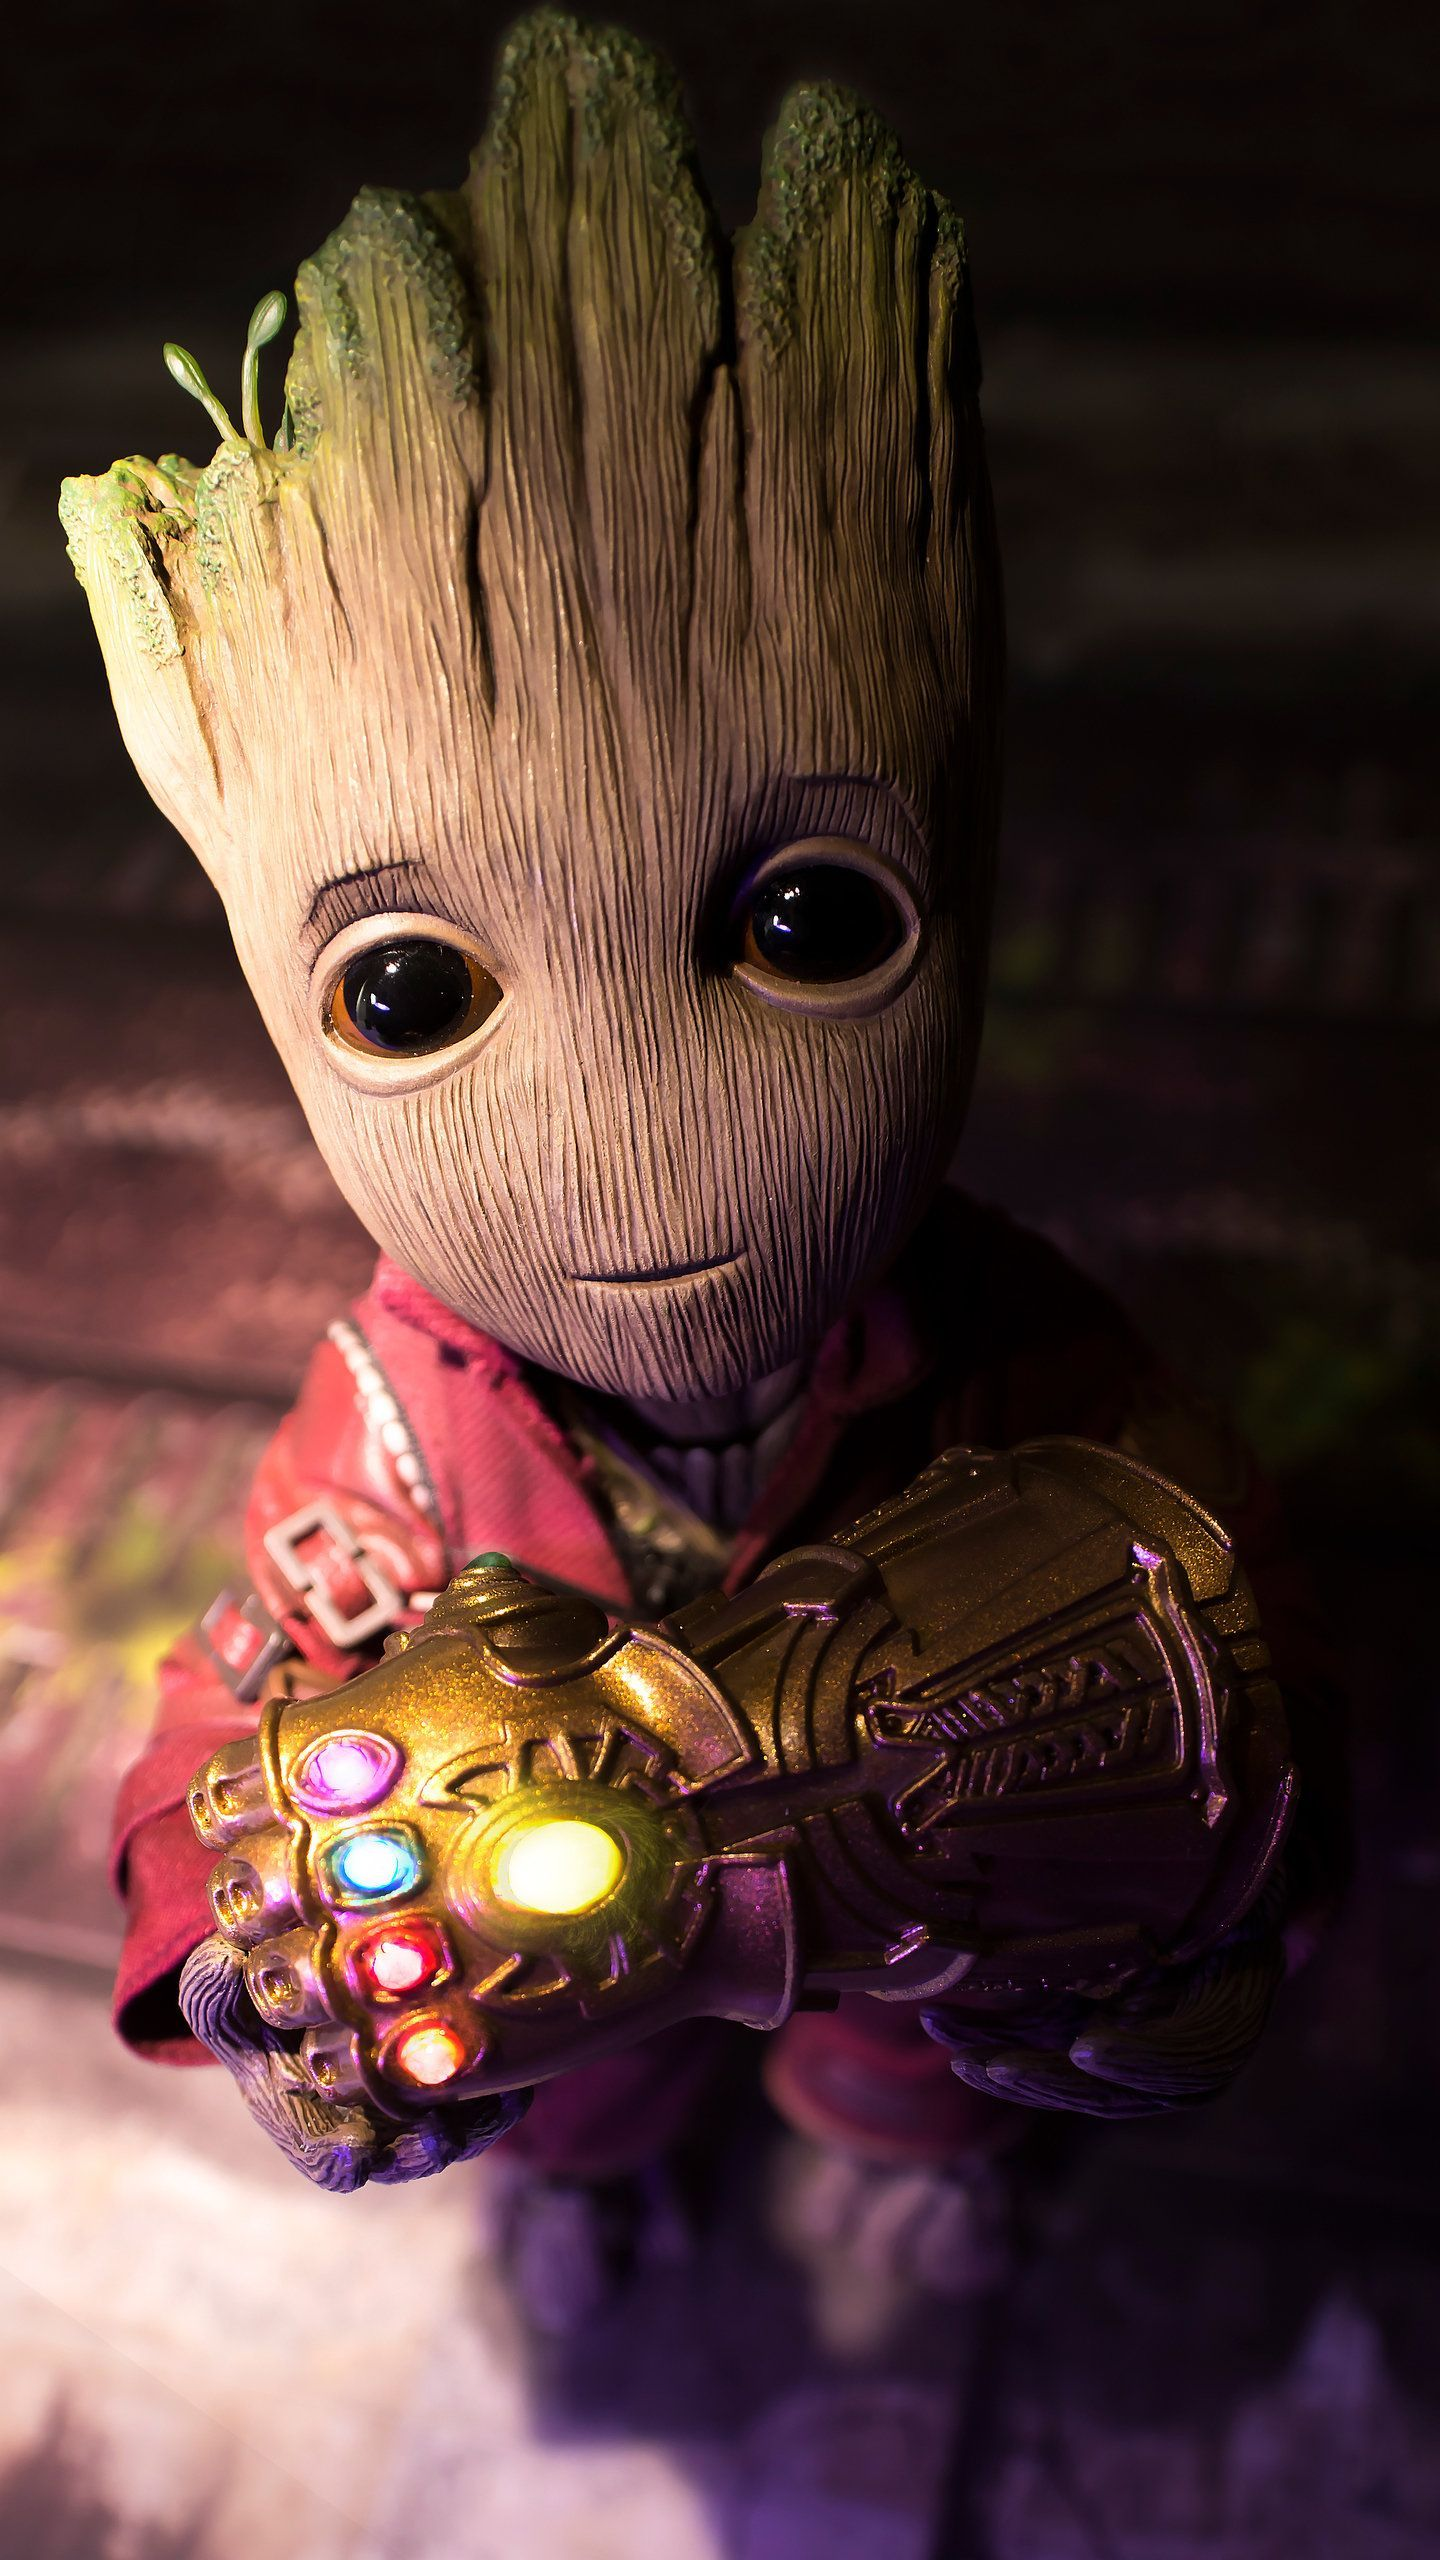 Baby Groot Mobile Hd Wallpapers Wallpaper Cave